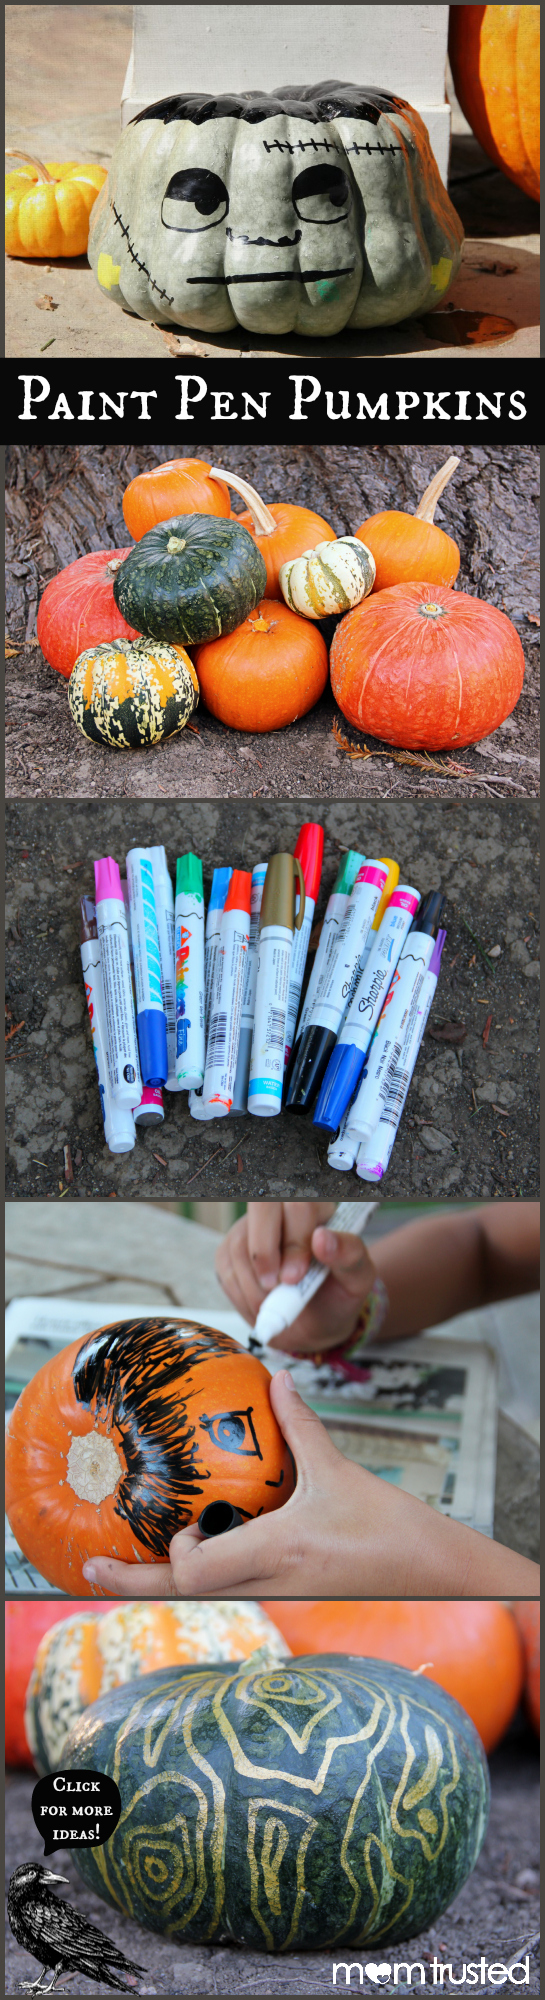 paint pen pumpkins by Mom Trusted title